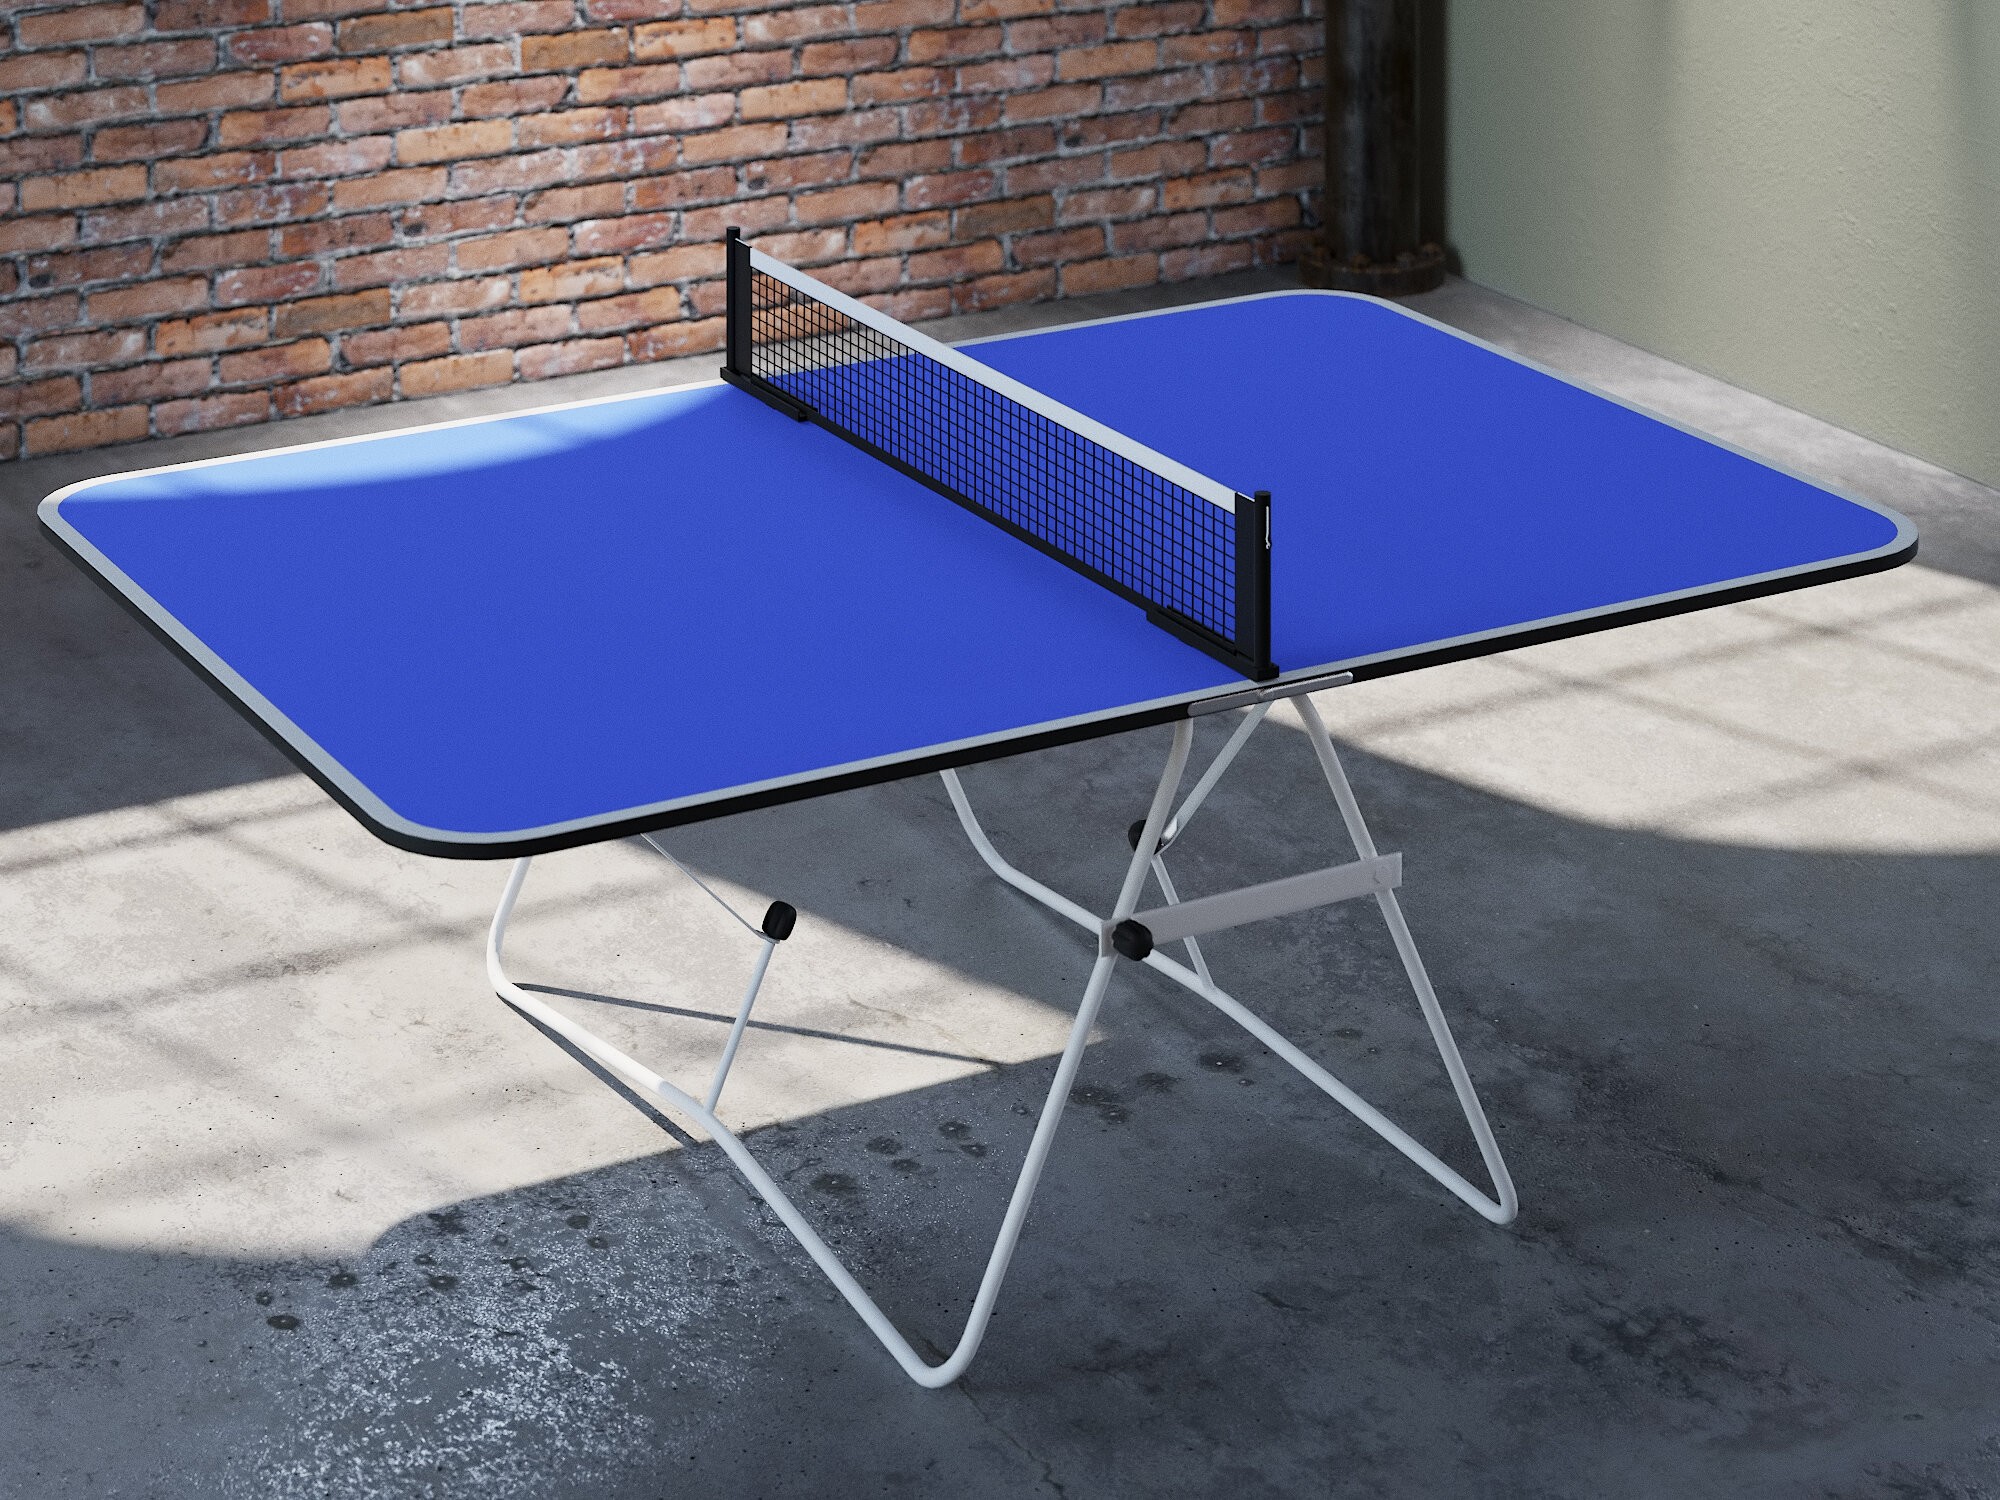 - Butterfly Family Mini Foldable Indoor Table Tennis Table & Reviews